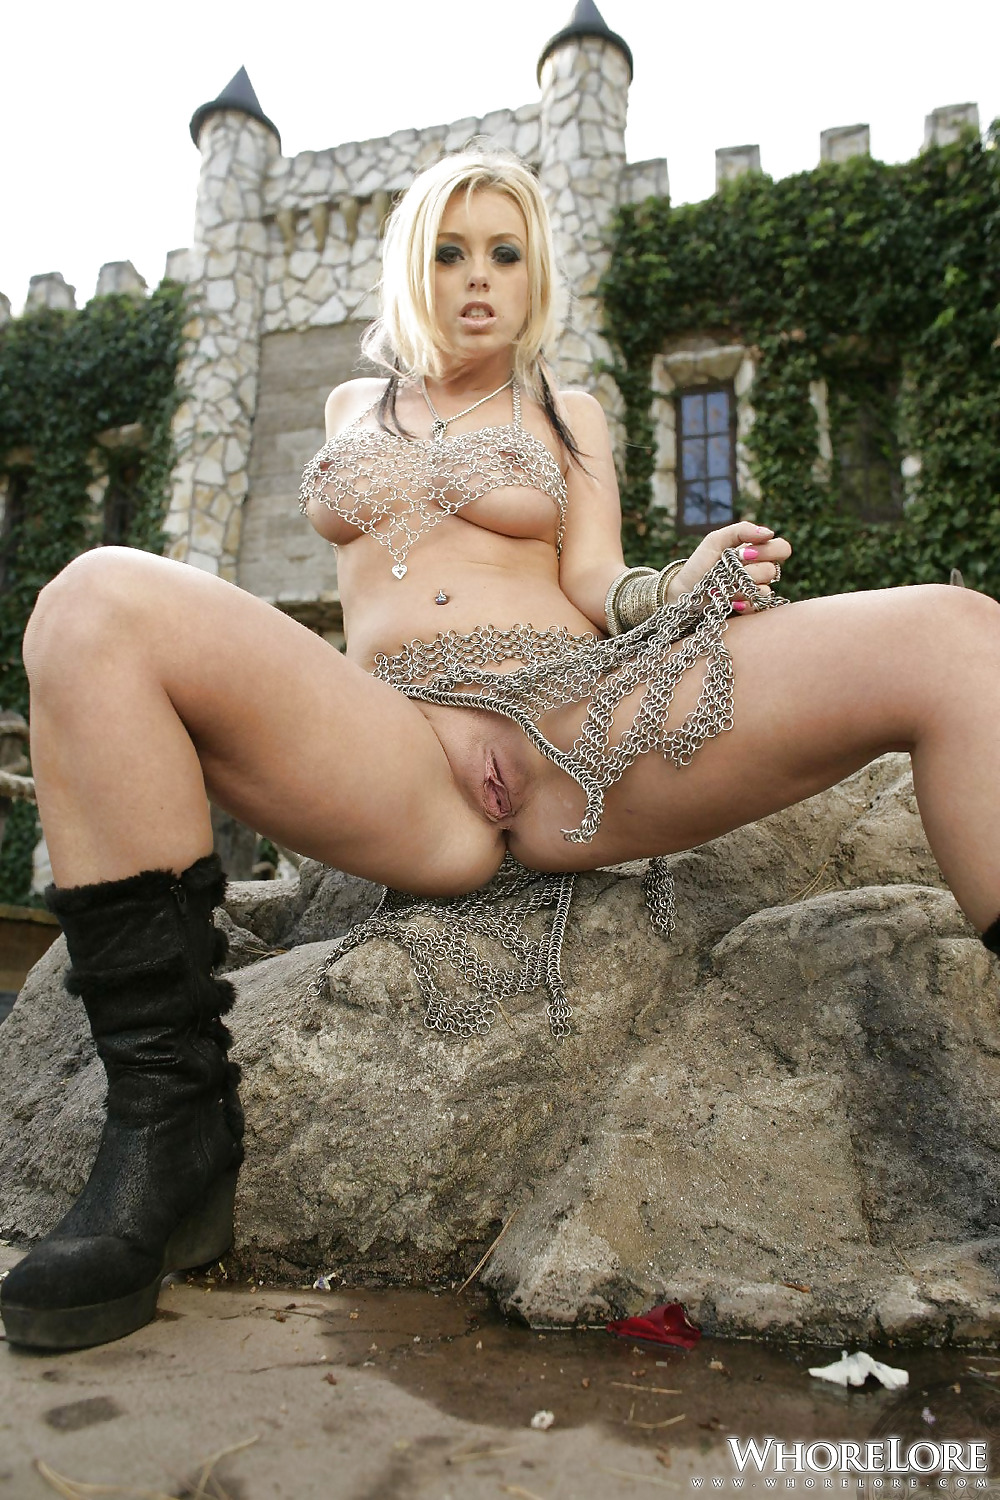 Viking babes porn, tight little nude asian girls